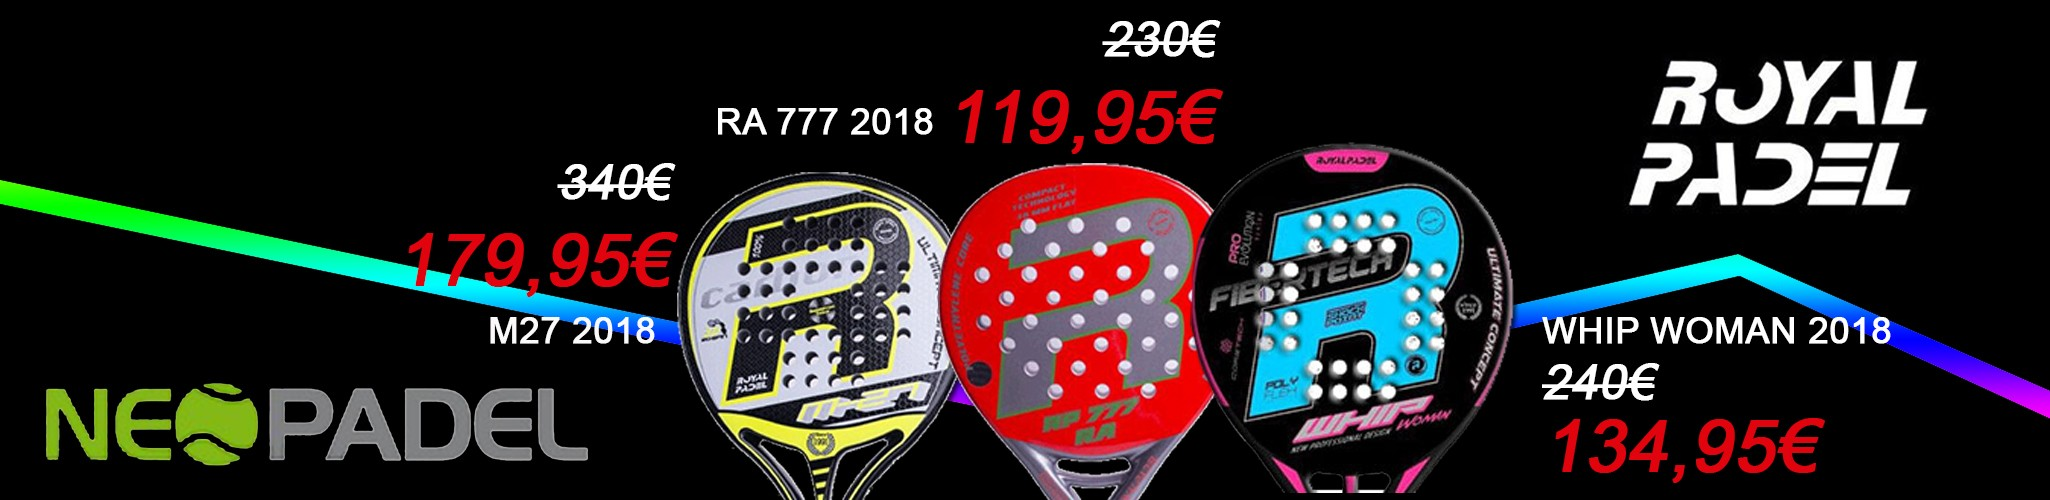 Black friday Royal padel 2